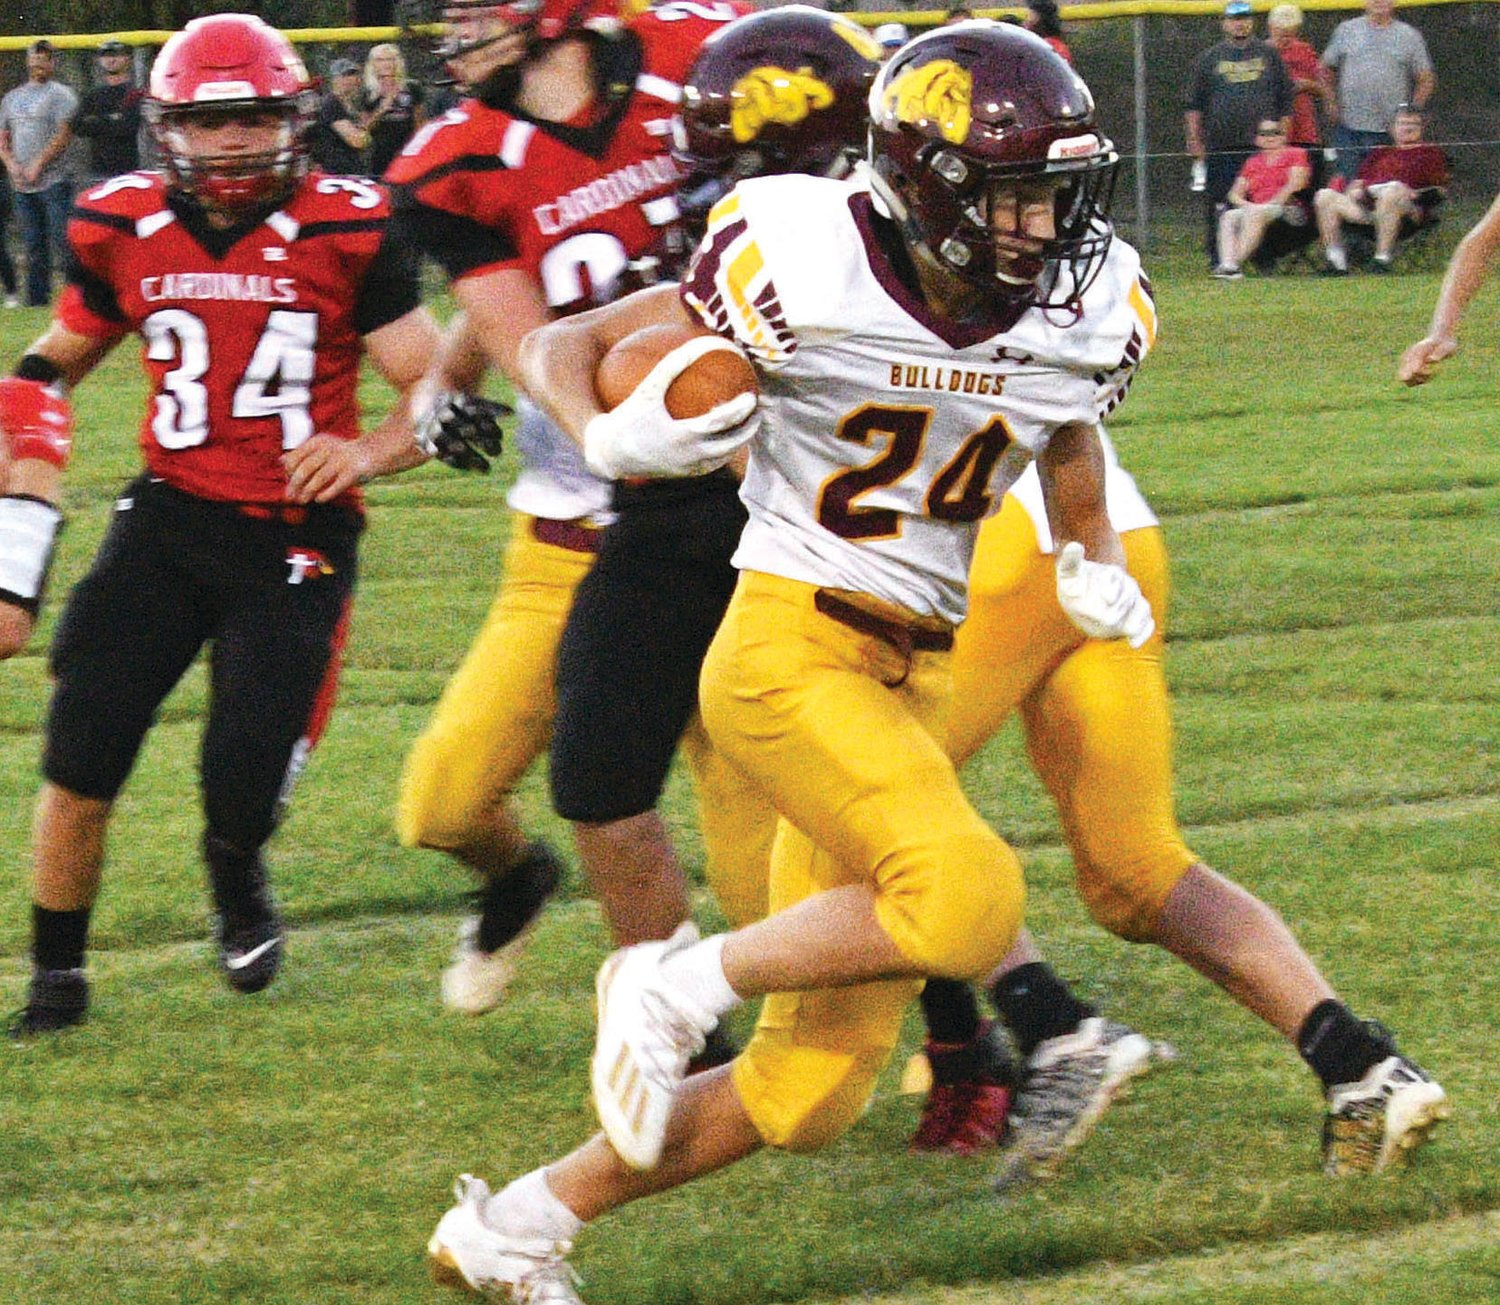 Kadyn Fast cuts hard around a good block, helping put an early end to Friday night's game in Dell Rapids.